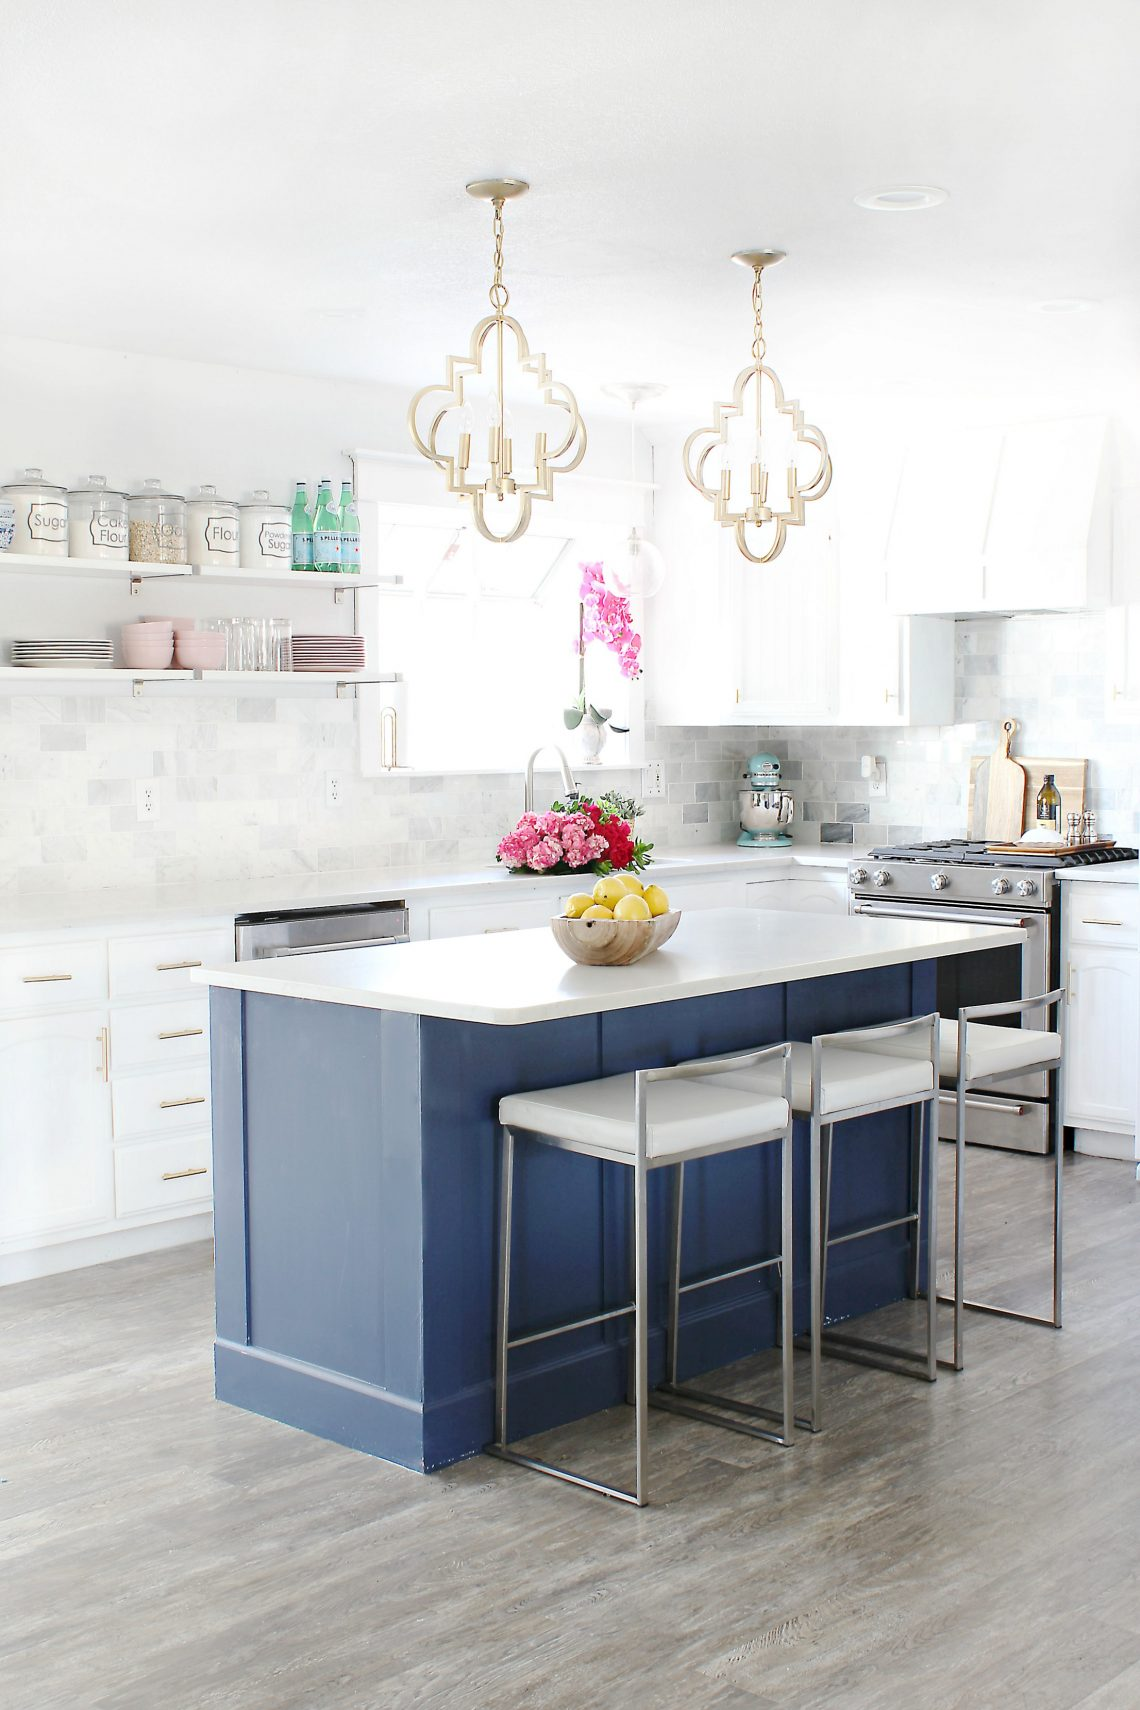 #mallorysprescottviewhome Kitchen Reveal